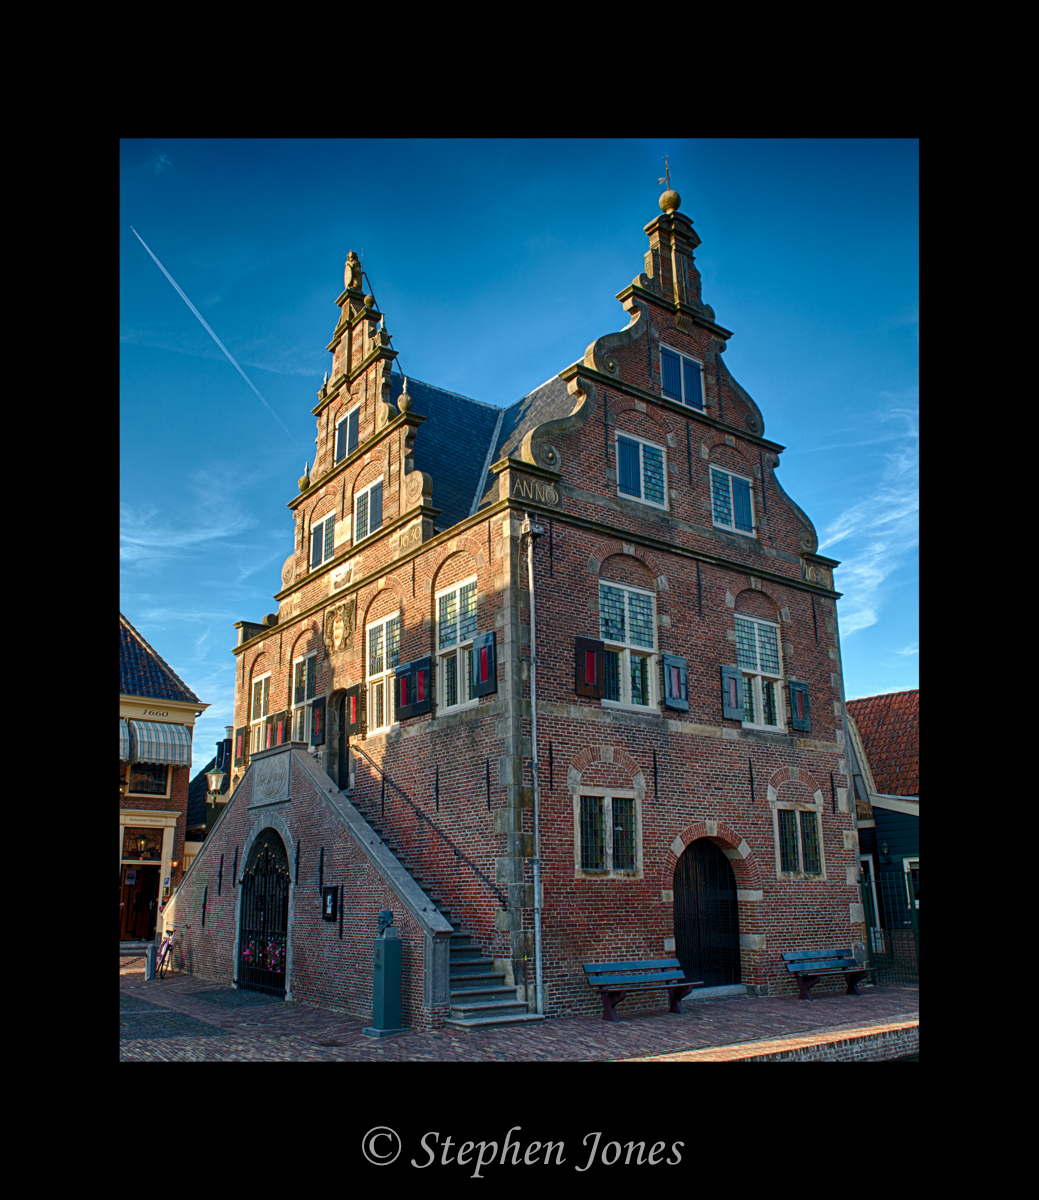 The Waag in the Rijp